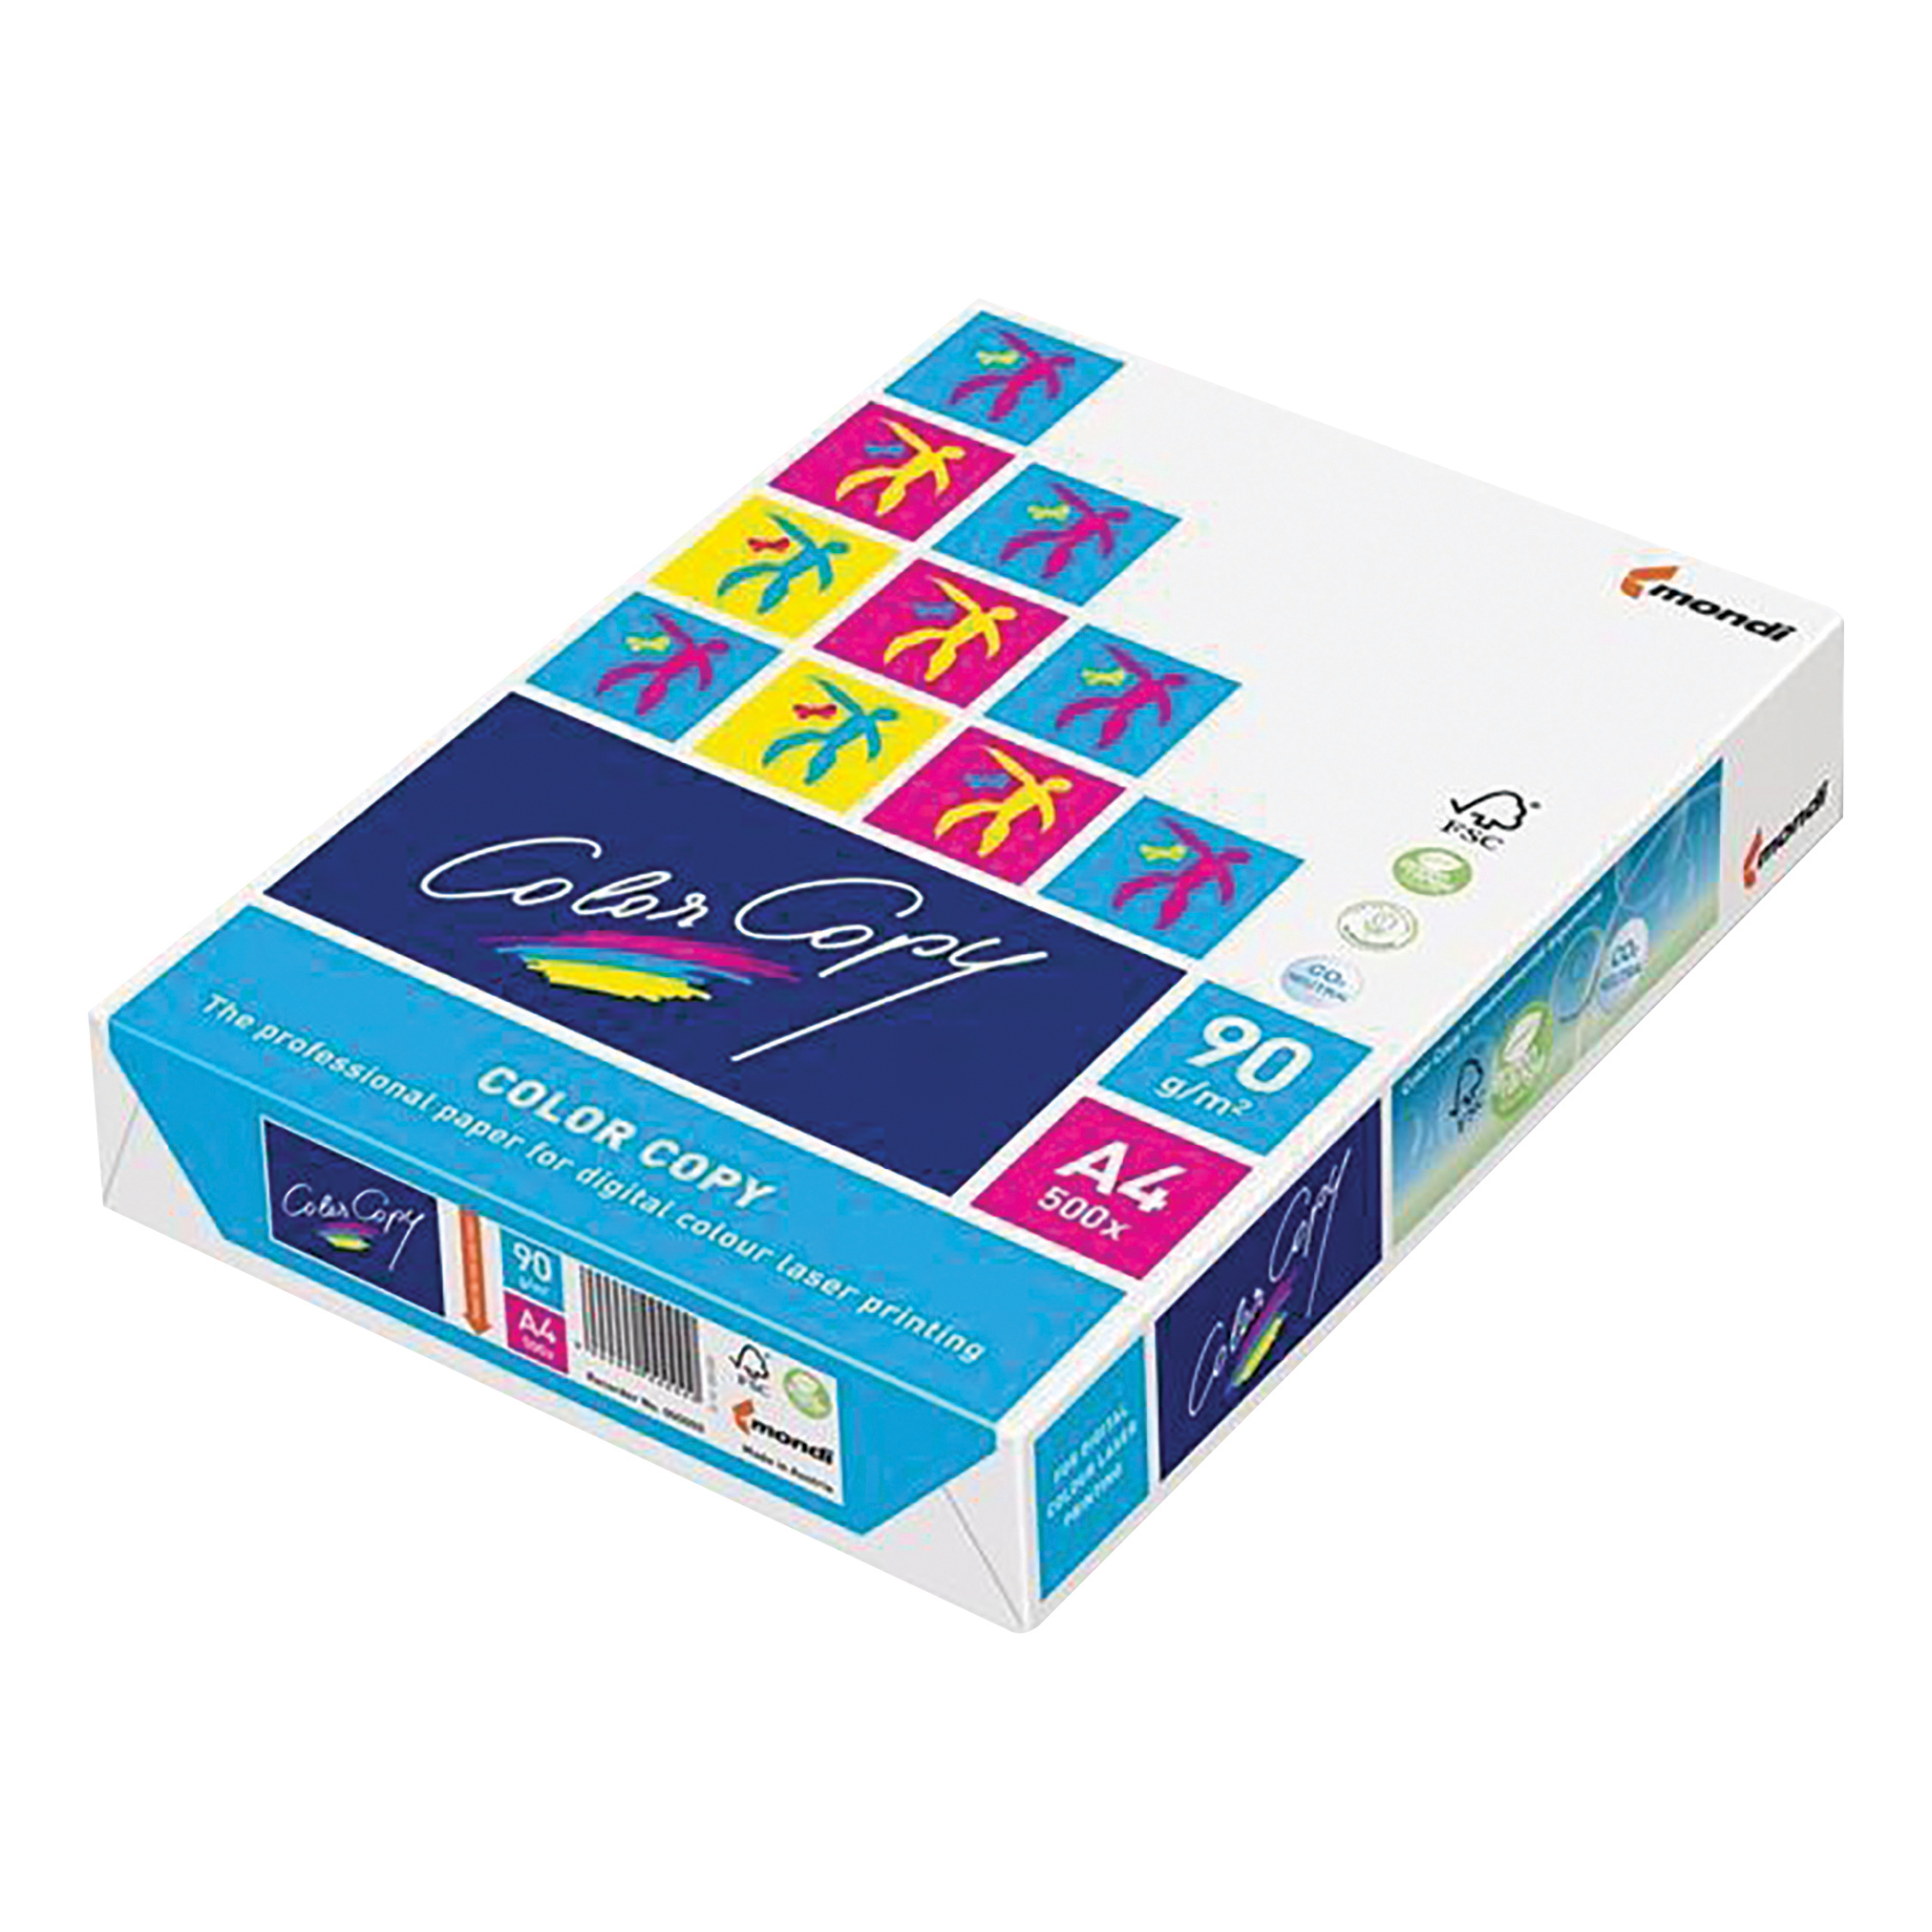 Color Copy Paper Premium Super Smooth FSC Ream-Wrapped 90gsm A4 White Ref CCW0321 [500 Sheets]